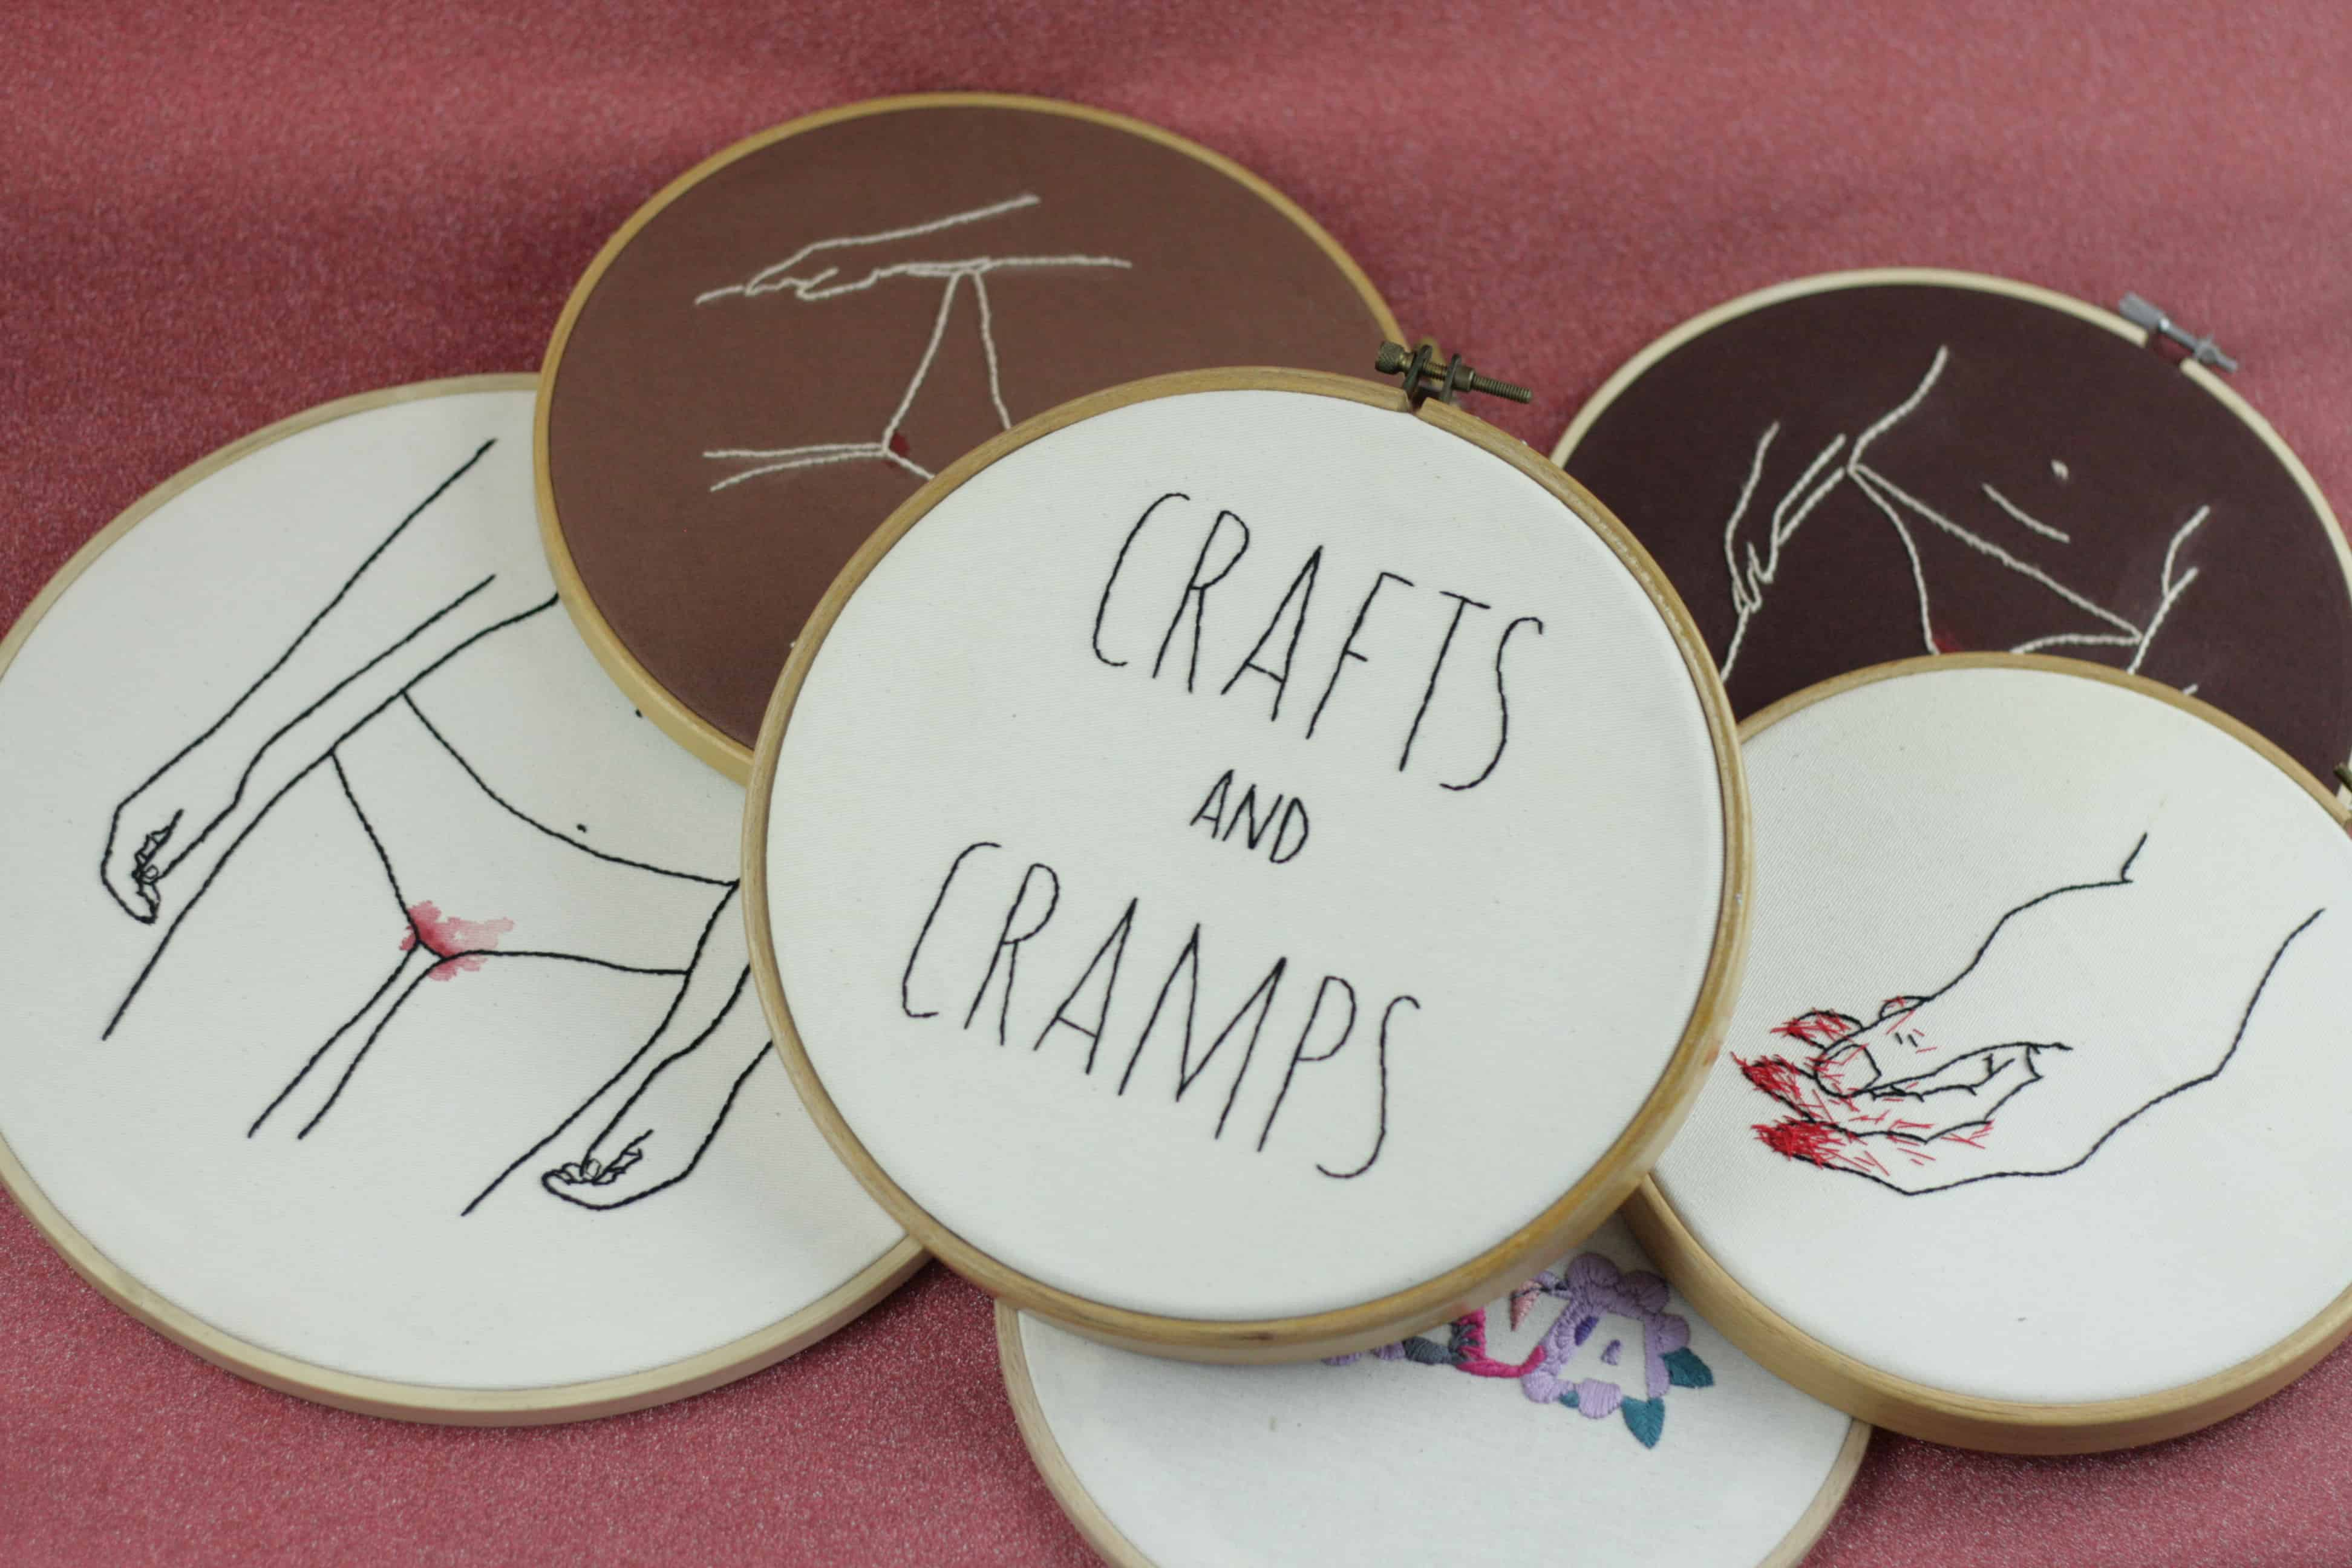 Stickereien von Crafts and Cramps